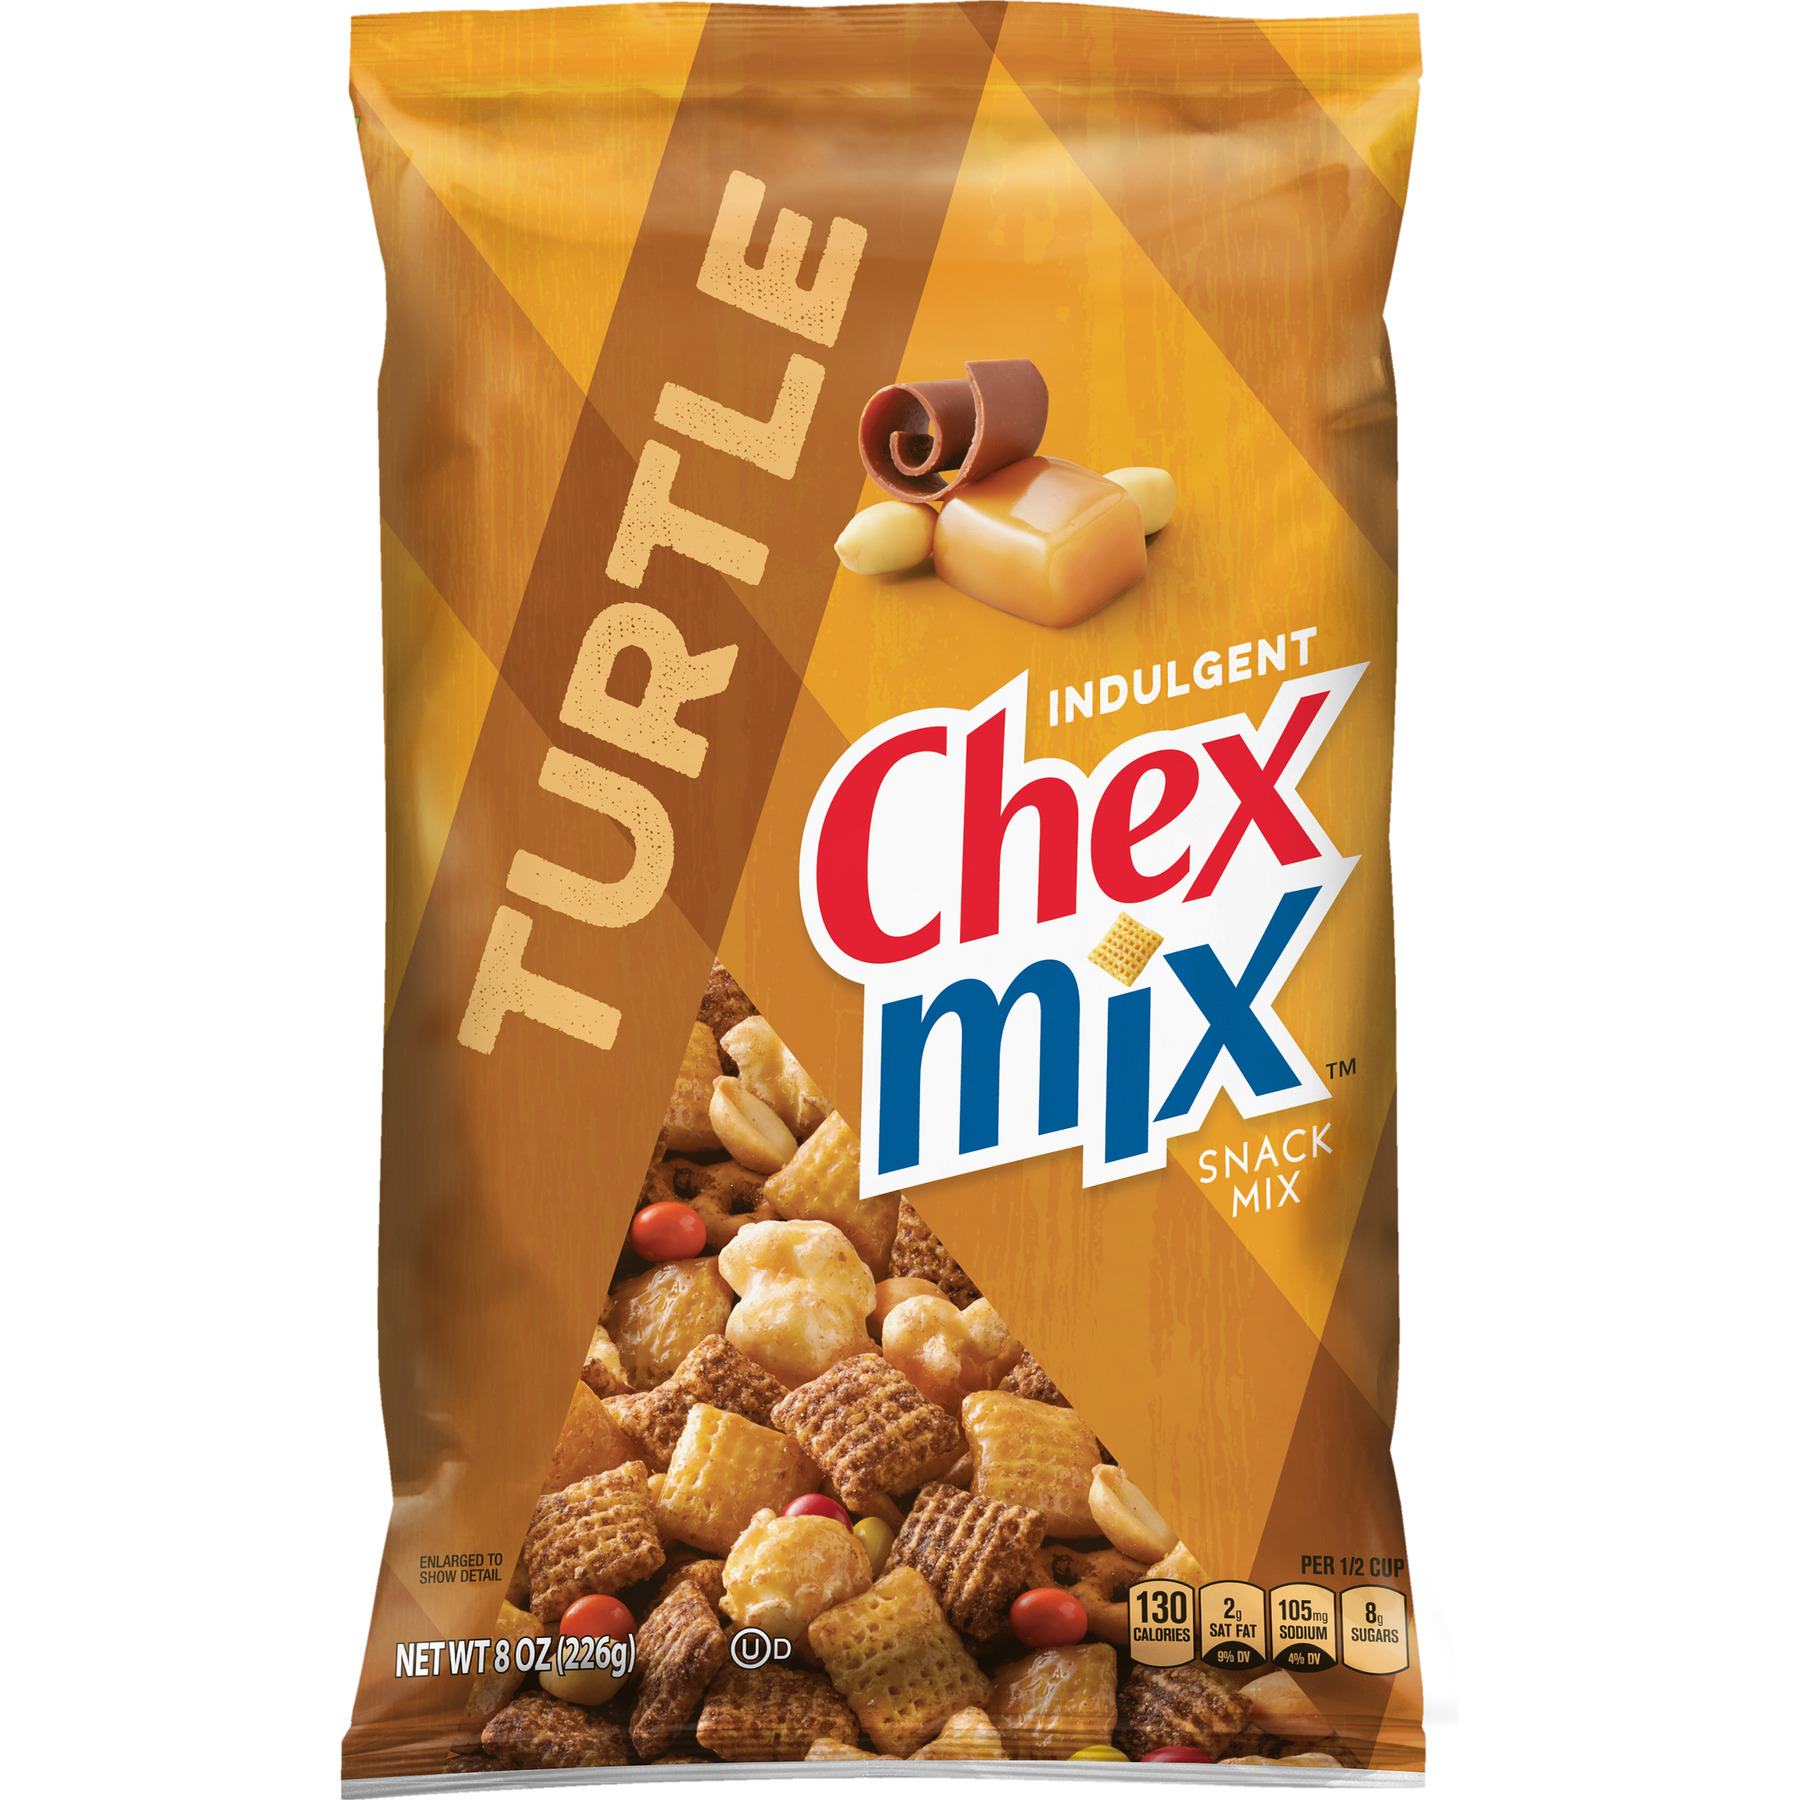 Chex Mix Turtle Snack Mix, 8 oz Bag